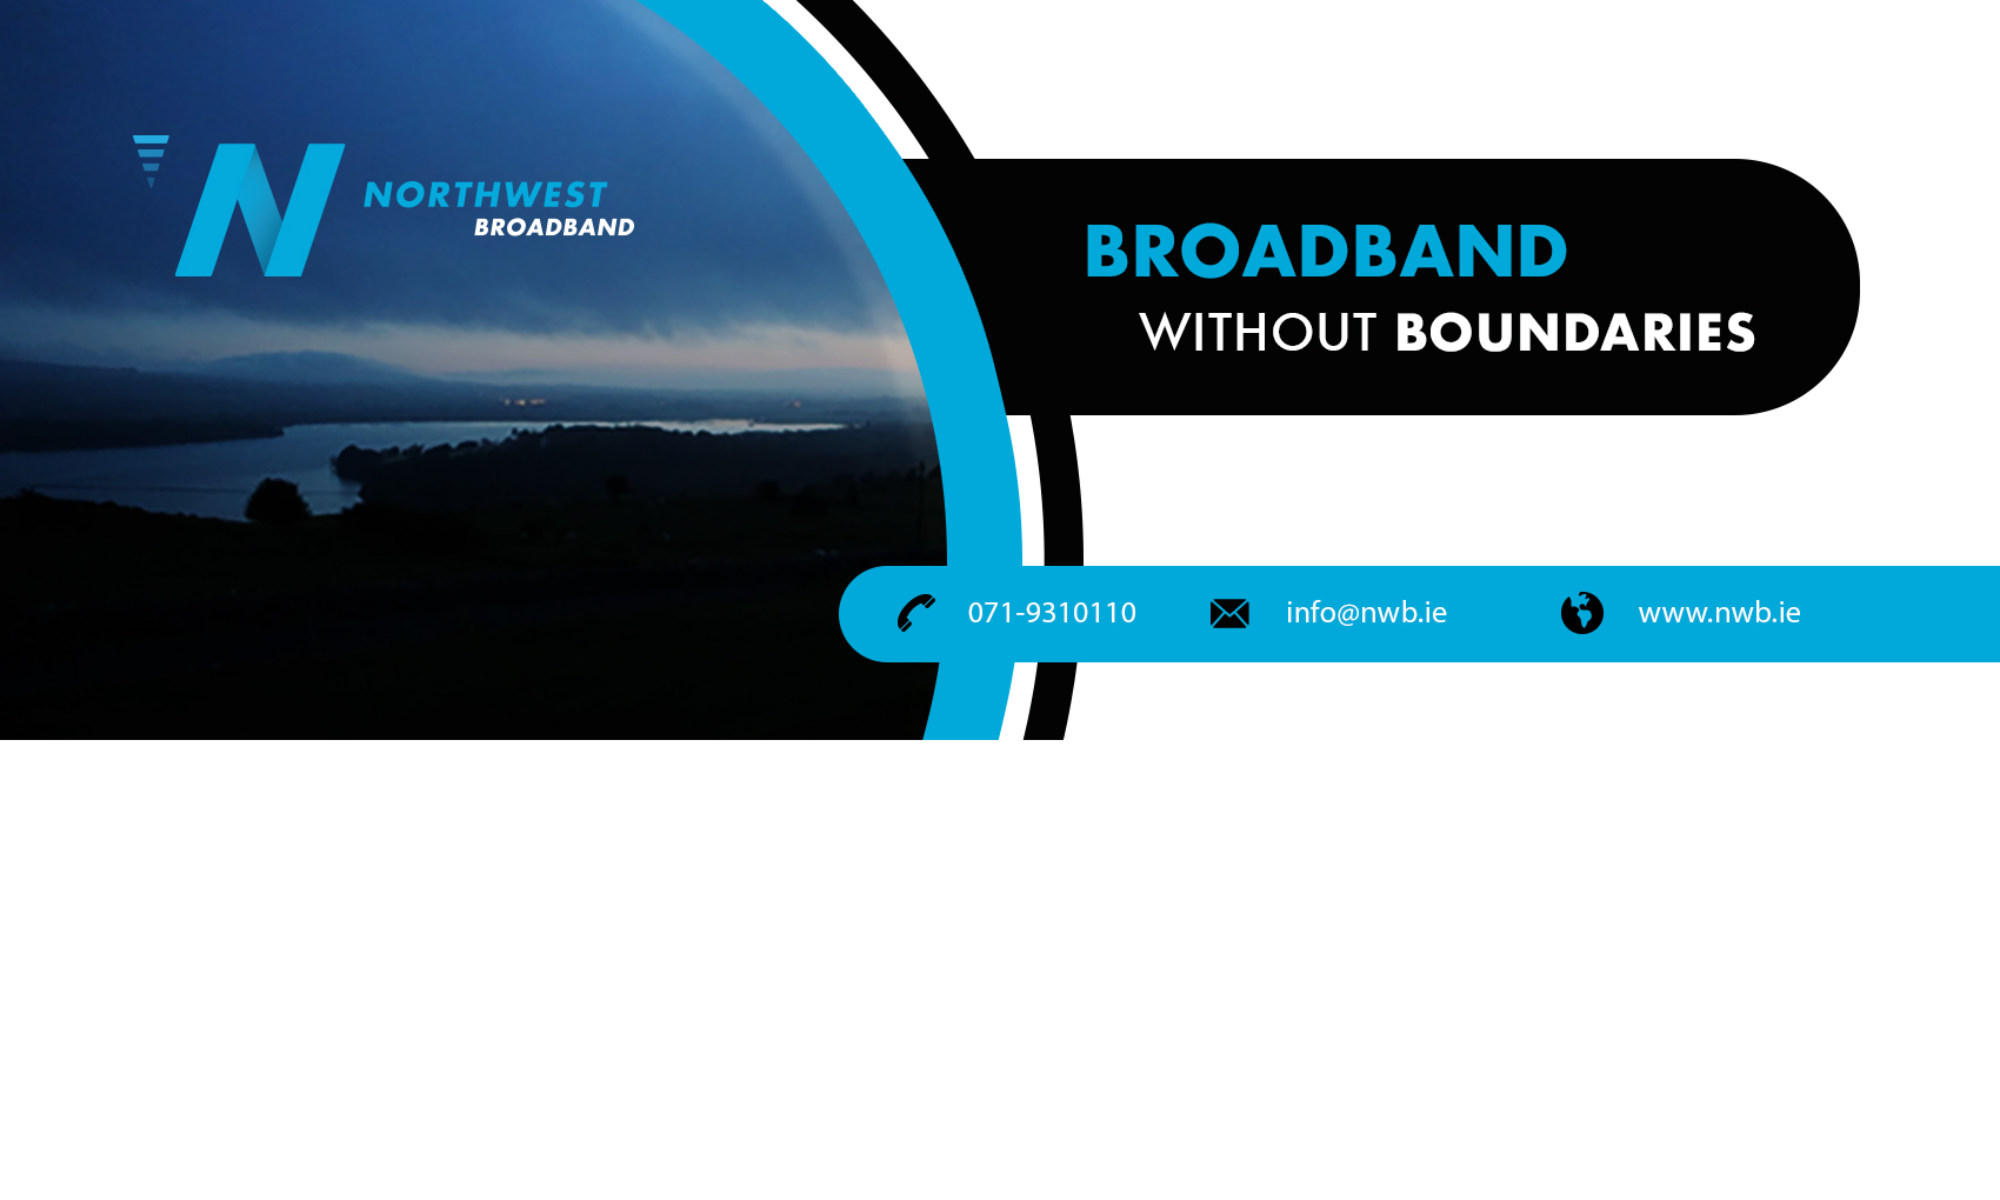 Northwest Broadband